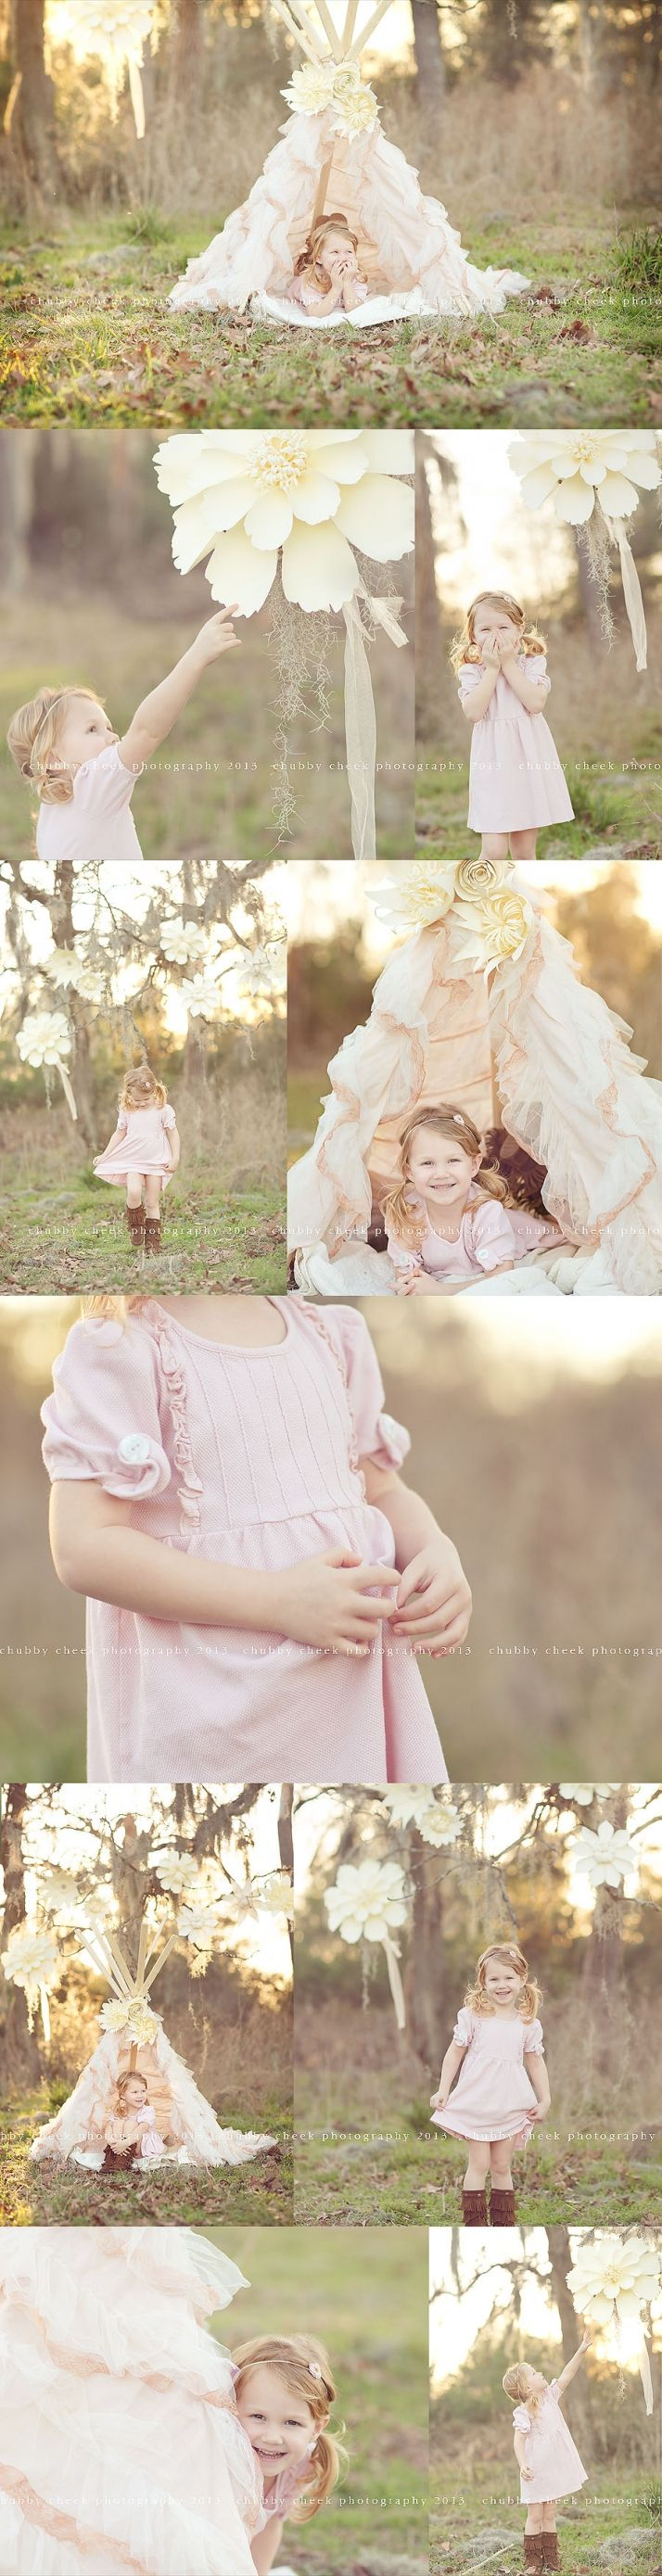 North Houston, Tomball, Cypress & The Woodlands TX Child & Family Photographer   chubby cheek photography blog - Part 20